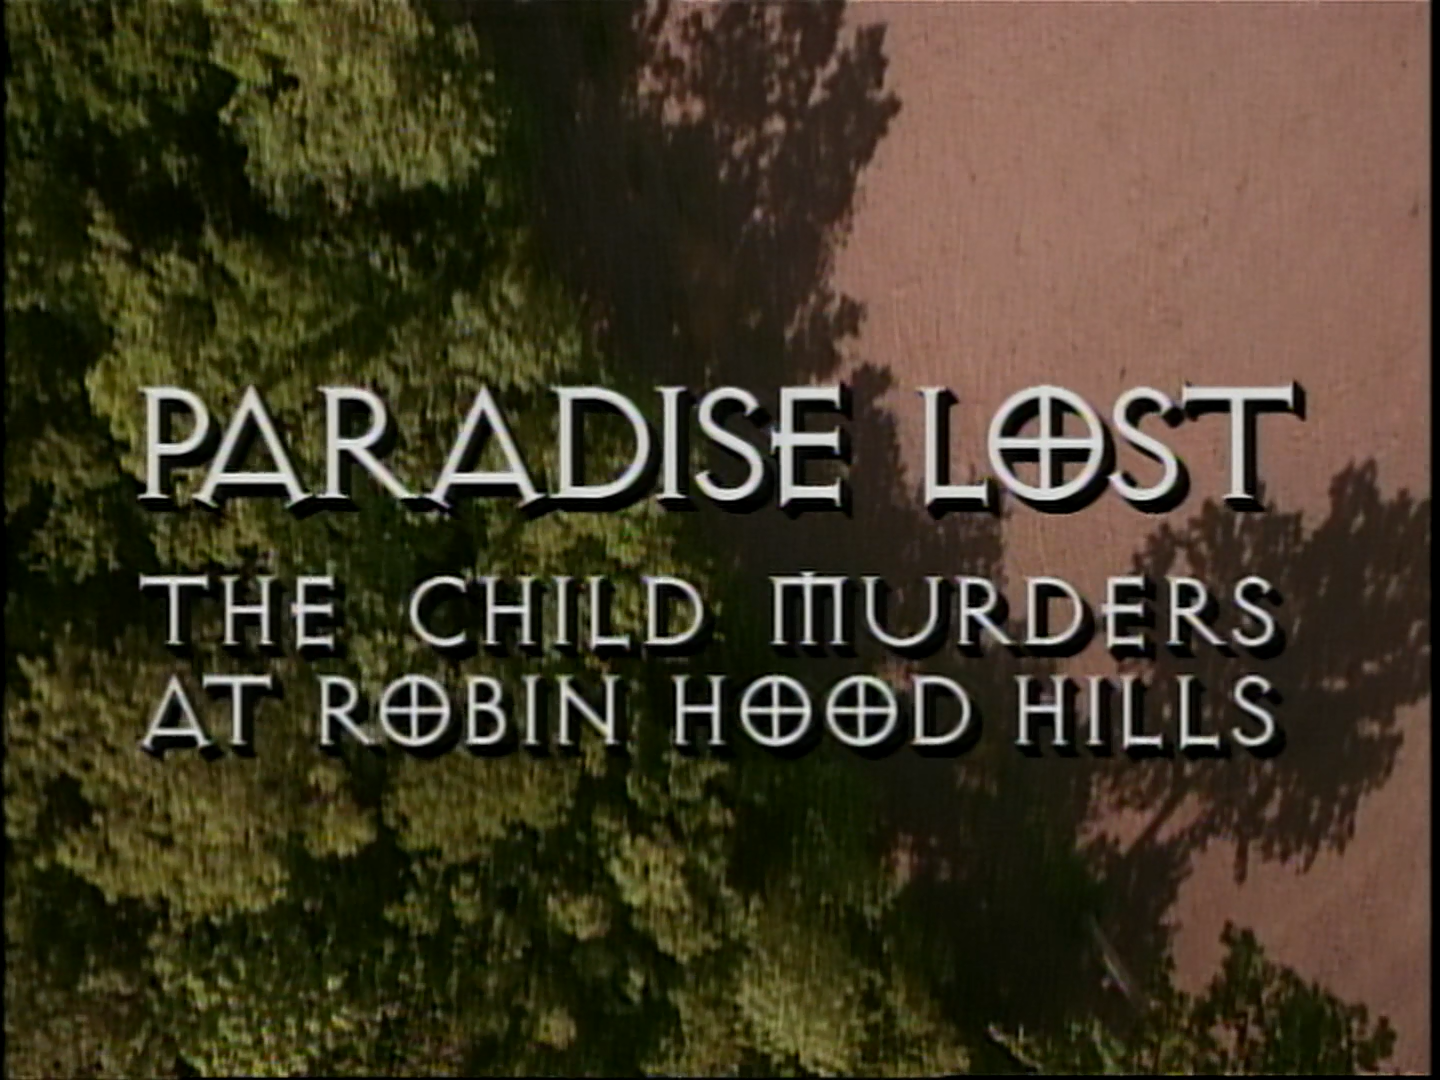 Paradise.Lost.The.Child.Murders.at.Robin.Hood.Hills.1996.1080p.WEB-DL.DD2.0.H.264.-whip93.mkv_snapshot_00.02.54_[2018.02.12_13.29.28].png